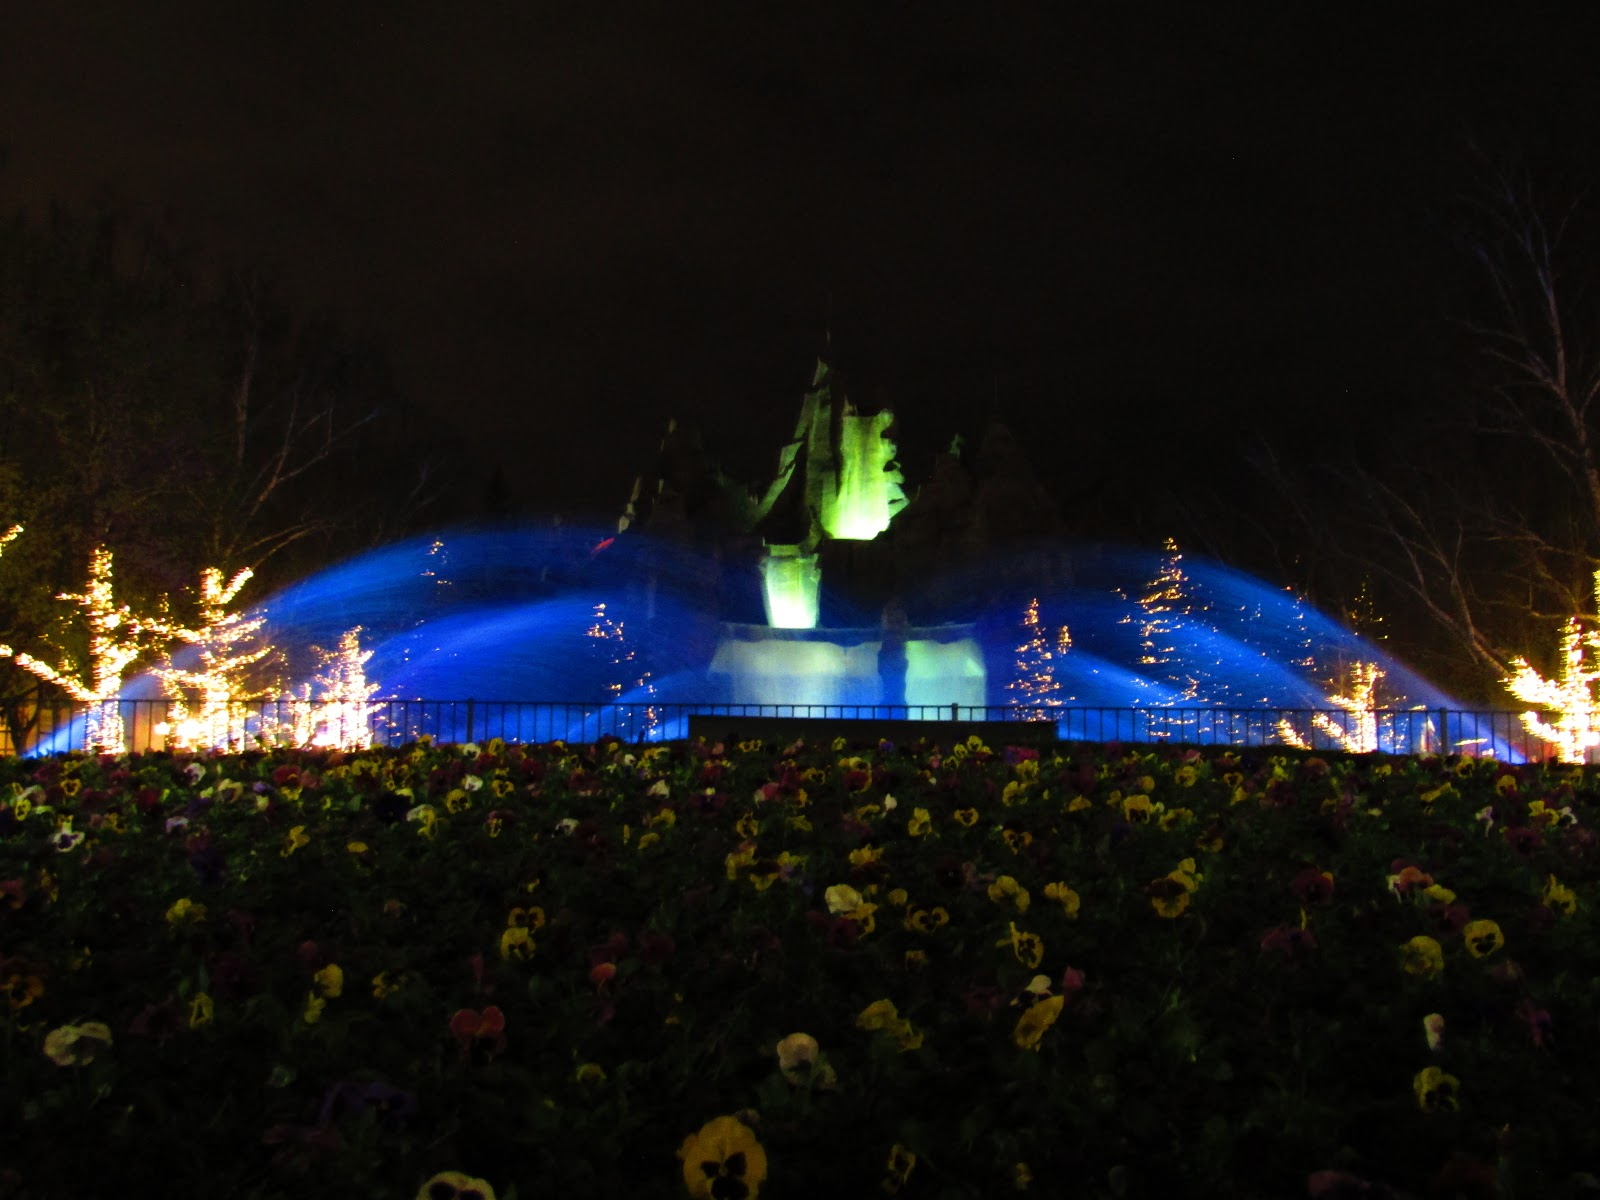 Here are the Royal Fountains glowing blue and some semi-lit pansies on International Street.